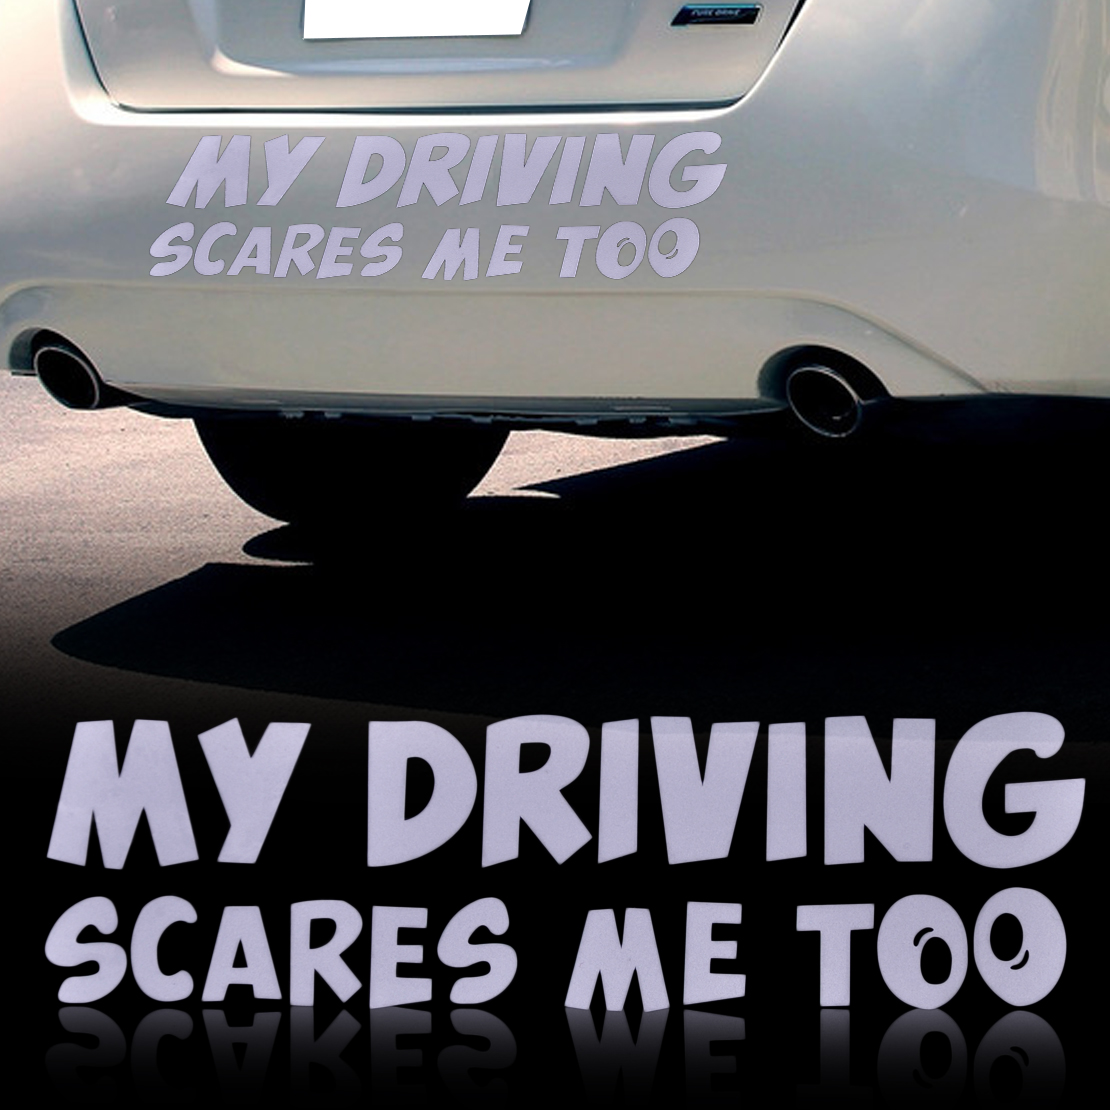 Car window sticker designs - Car Stickers My Driving Scares Me Too Window Bumper Van Custom Funny Vinyl Sticker Decals For